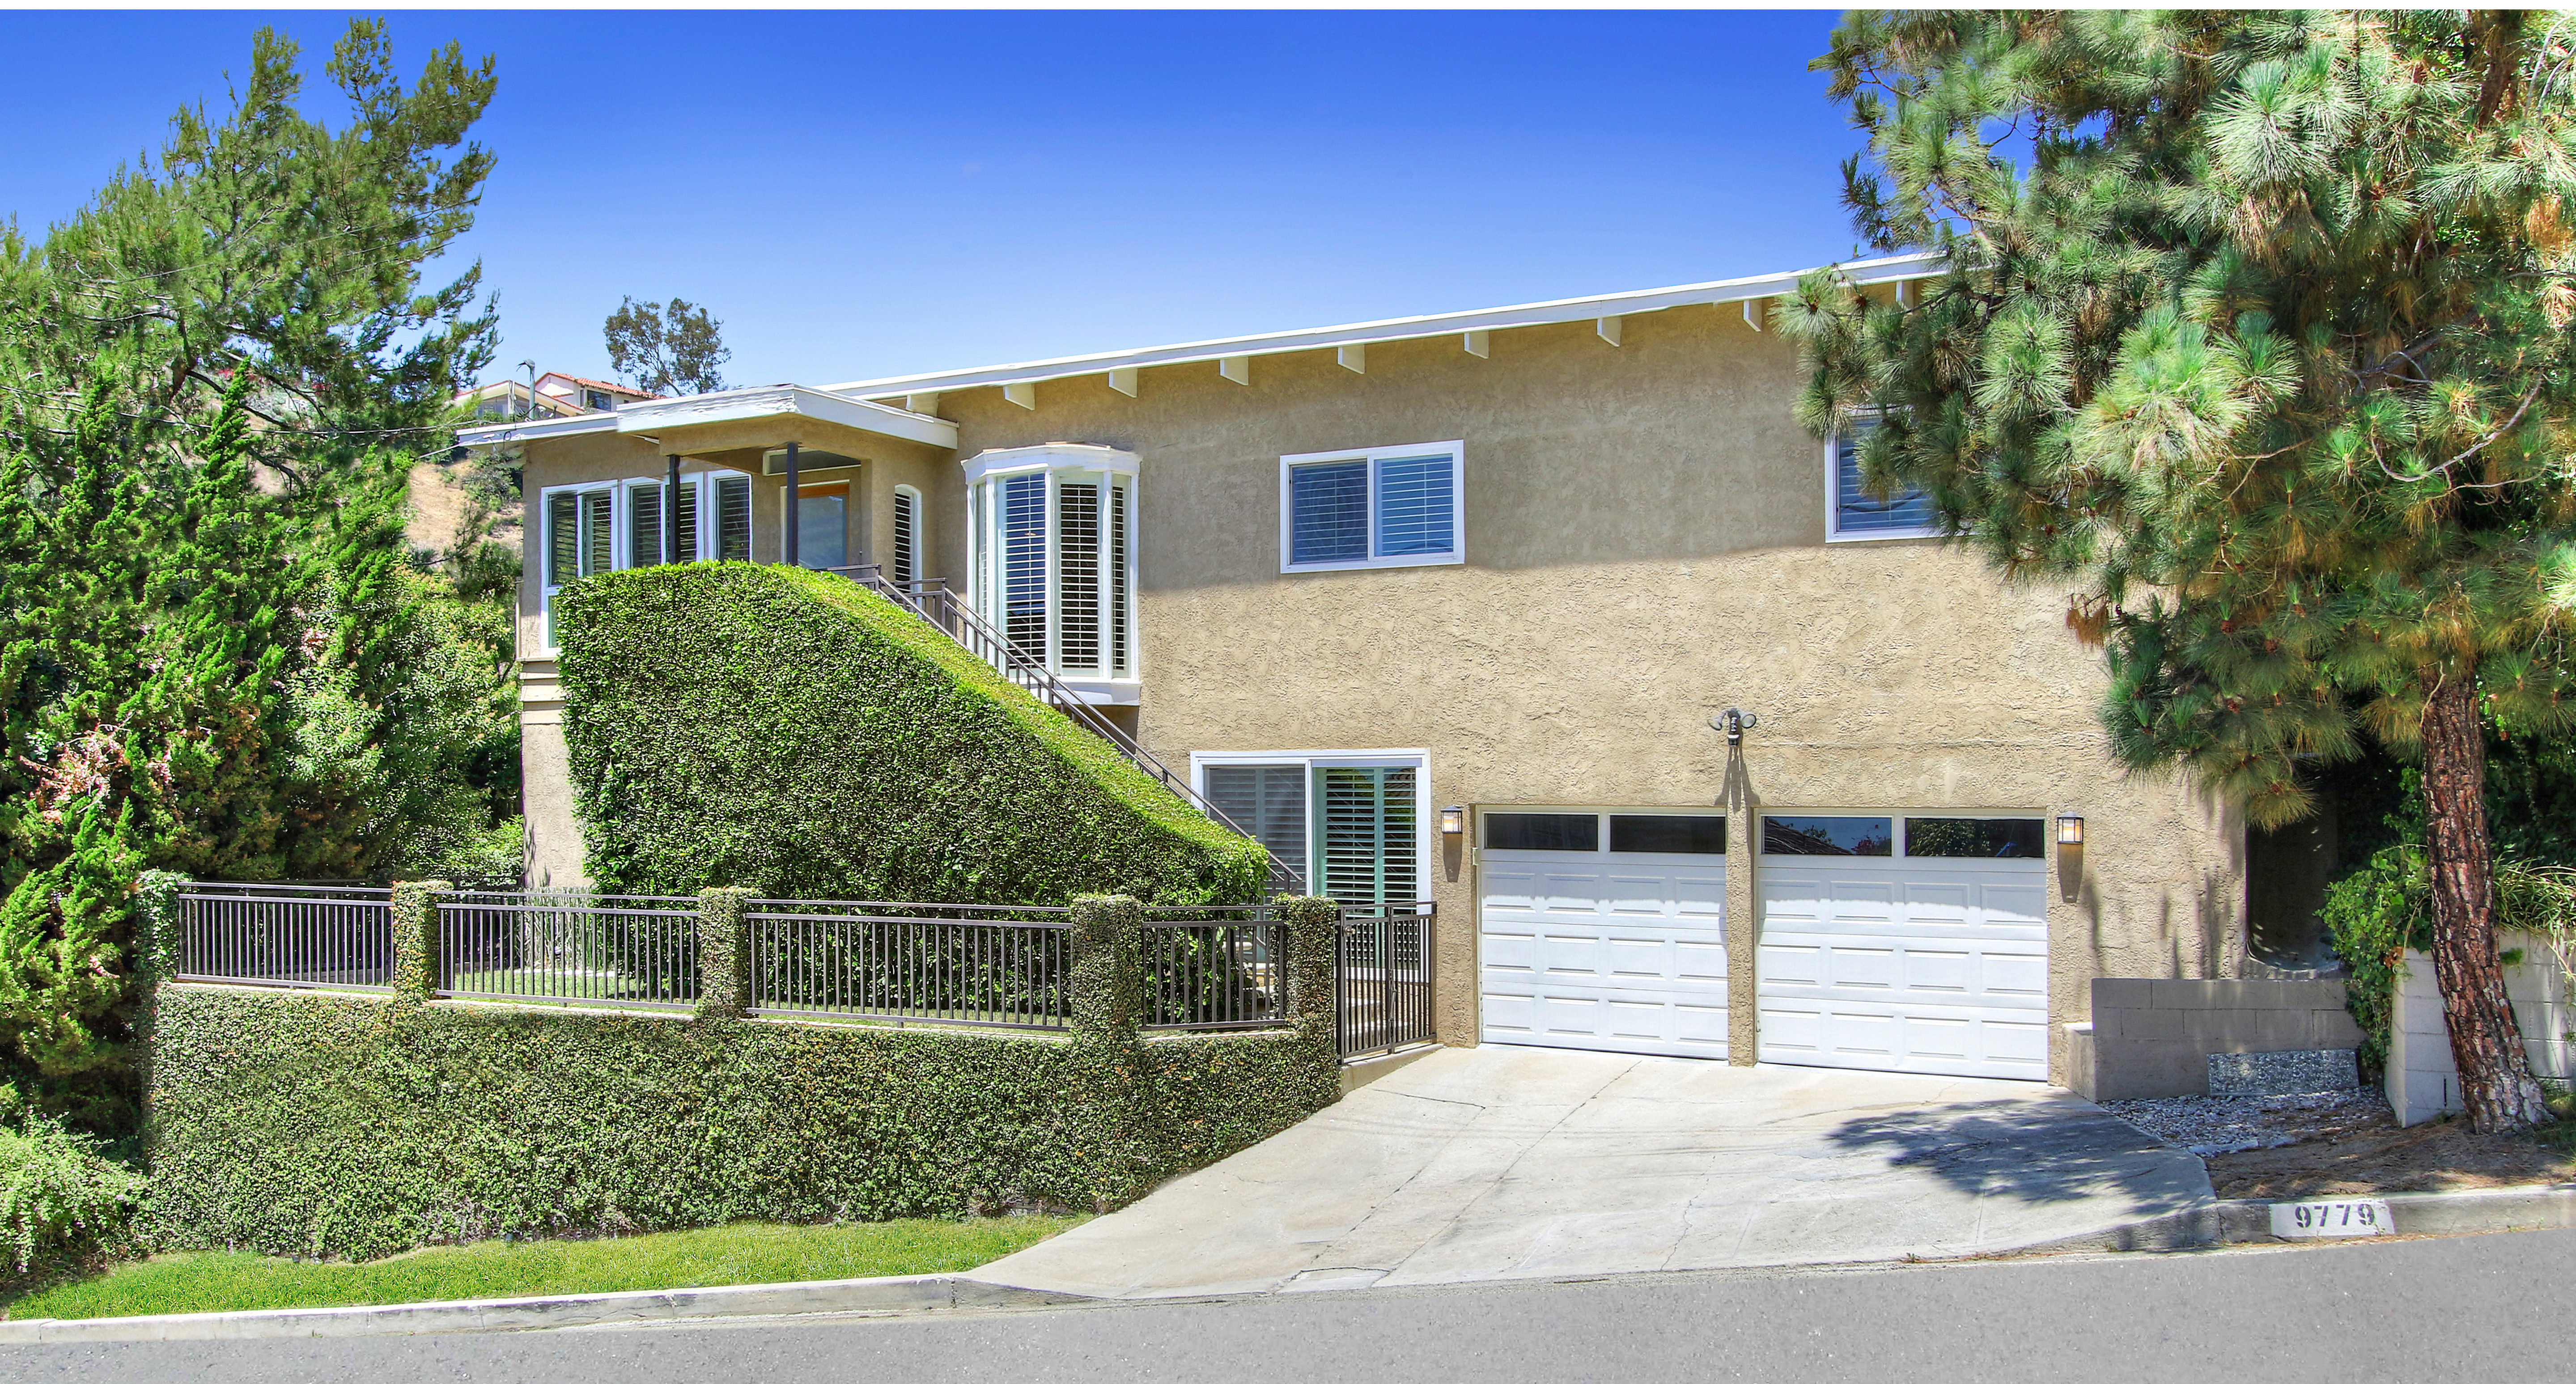 <b>SOLD</b><br> 9779 Apricot Ln<br>Beverly Hills<br>Offered at $1,795,000